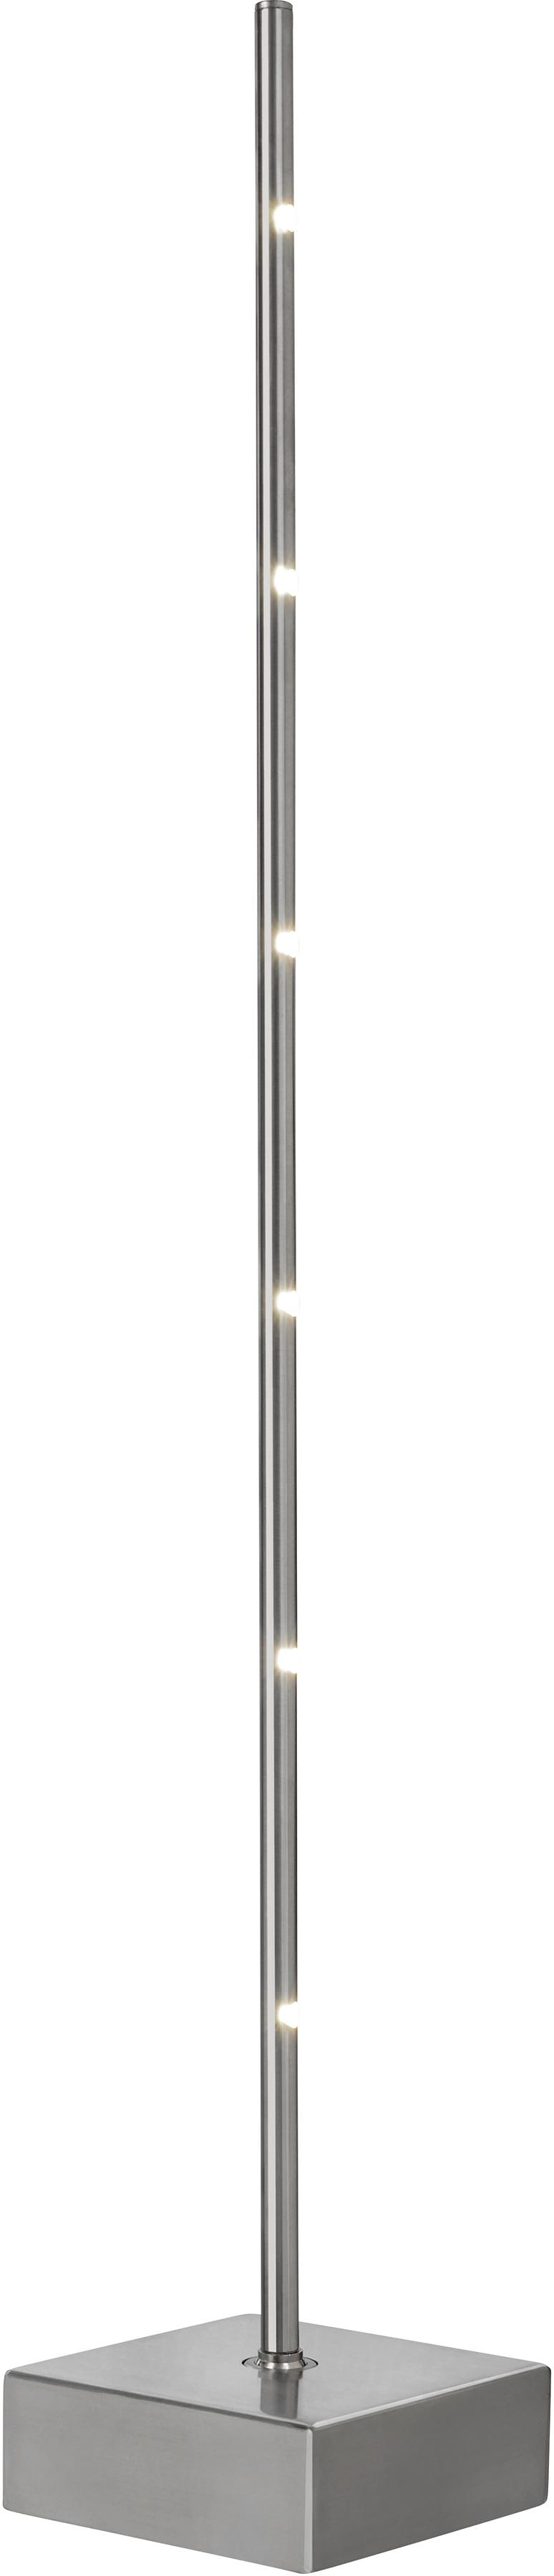 SOMPEX LED Tischleuchte Pin, LED-Board, Warmweiß